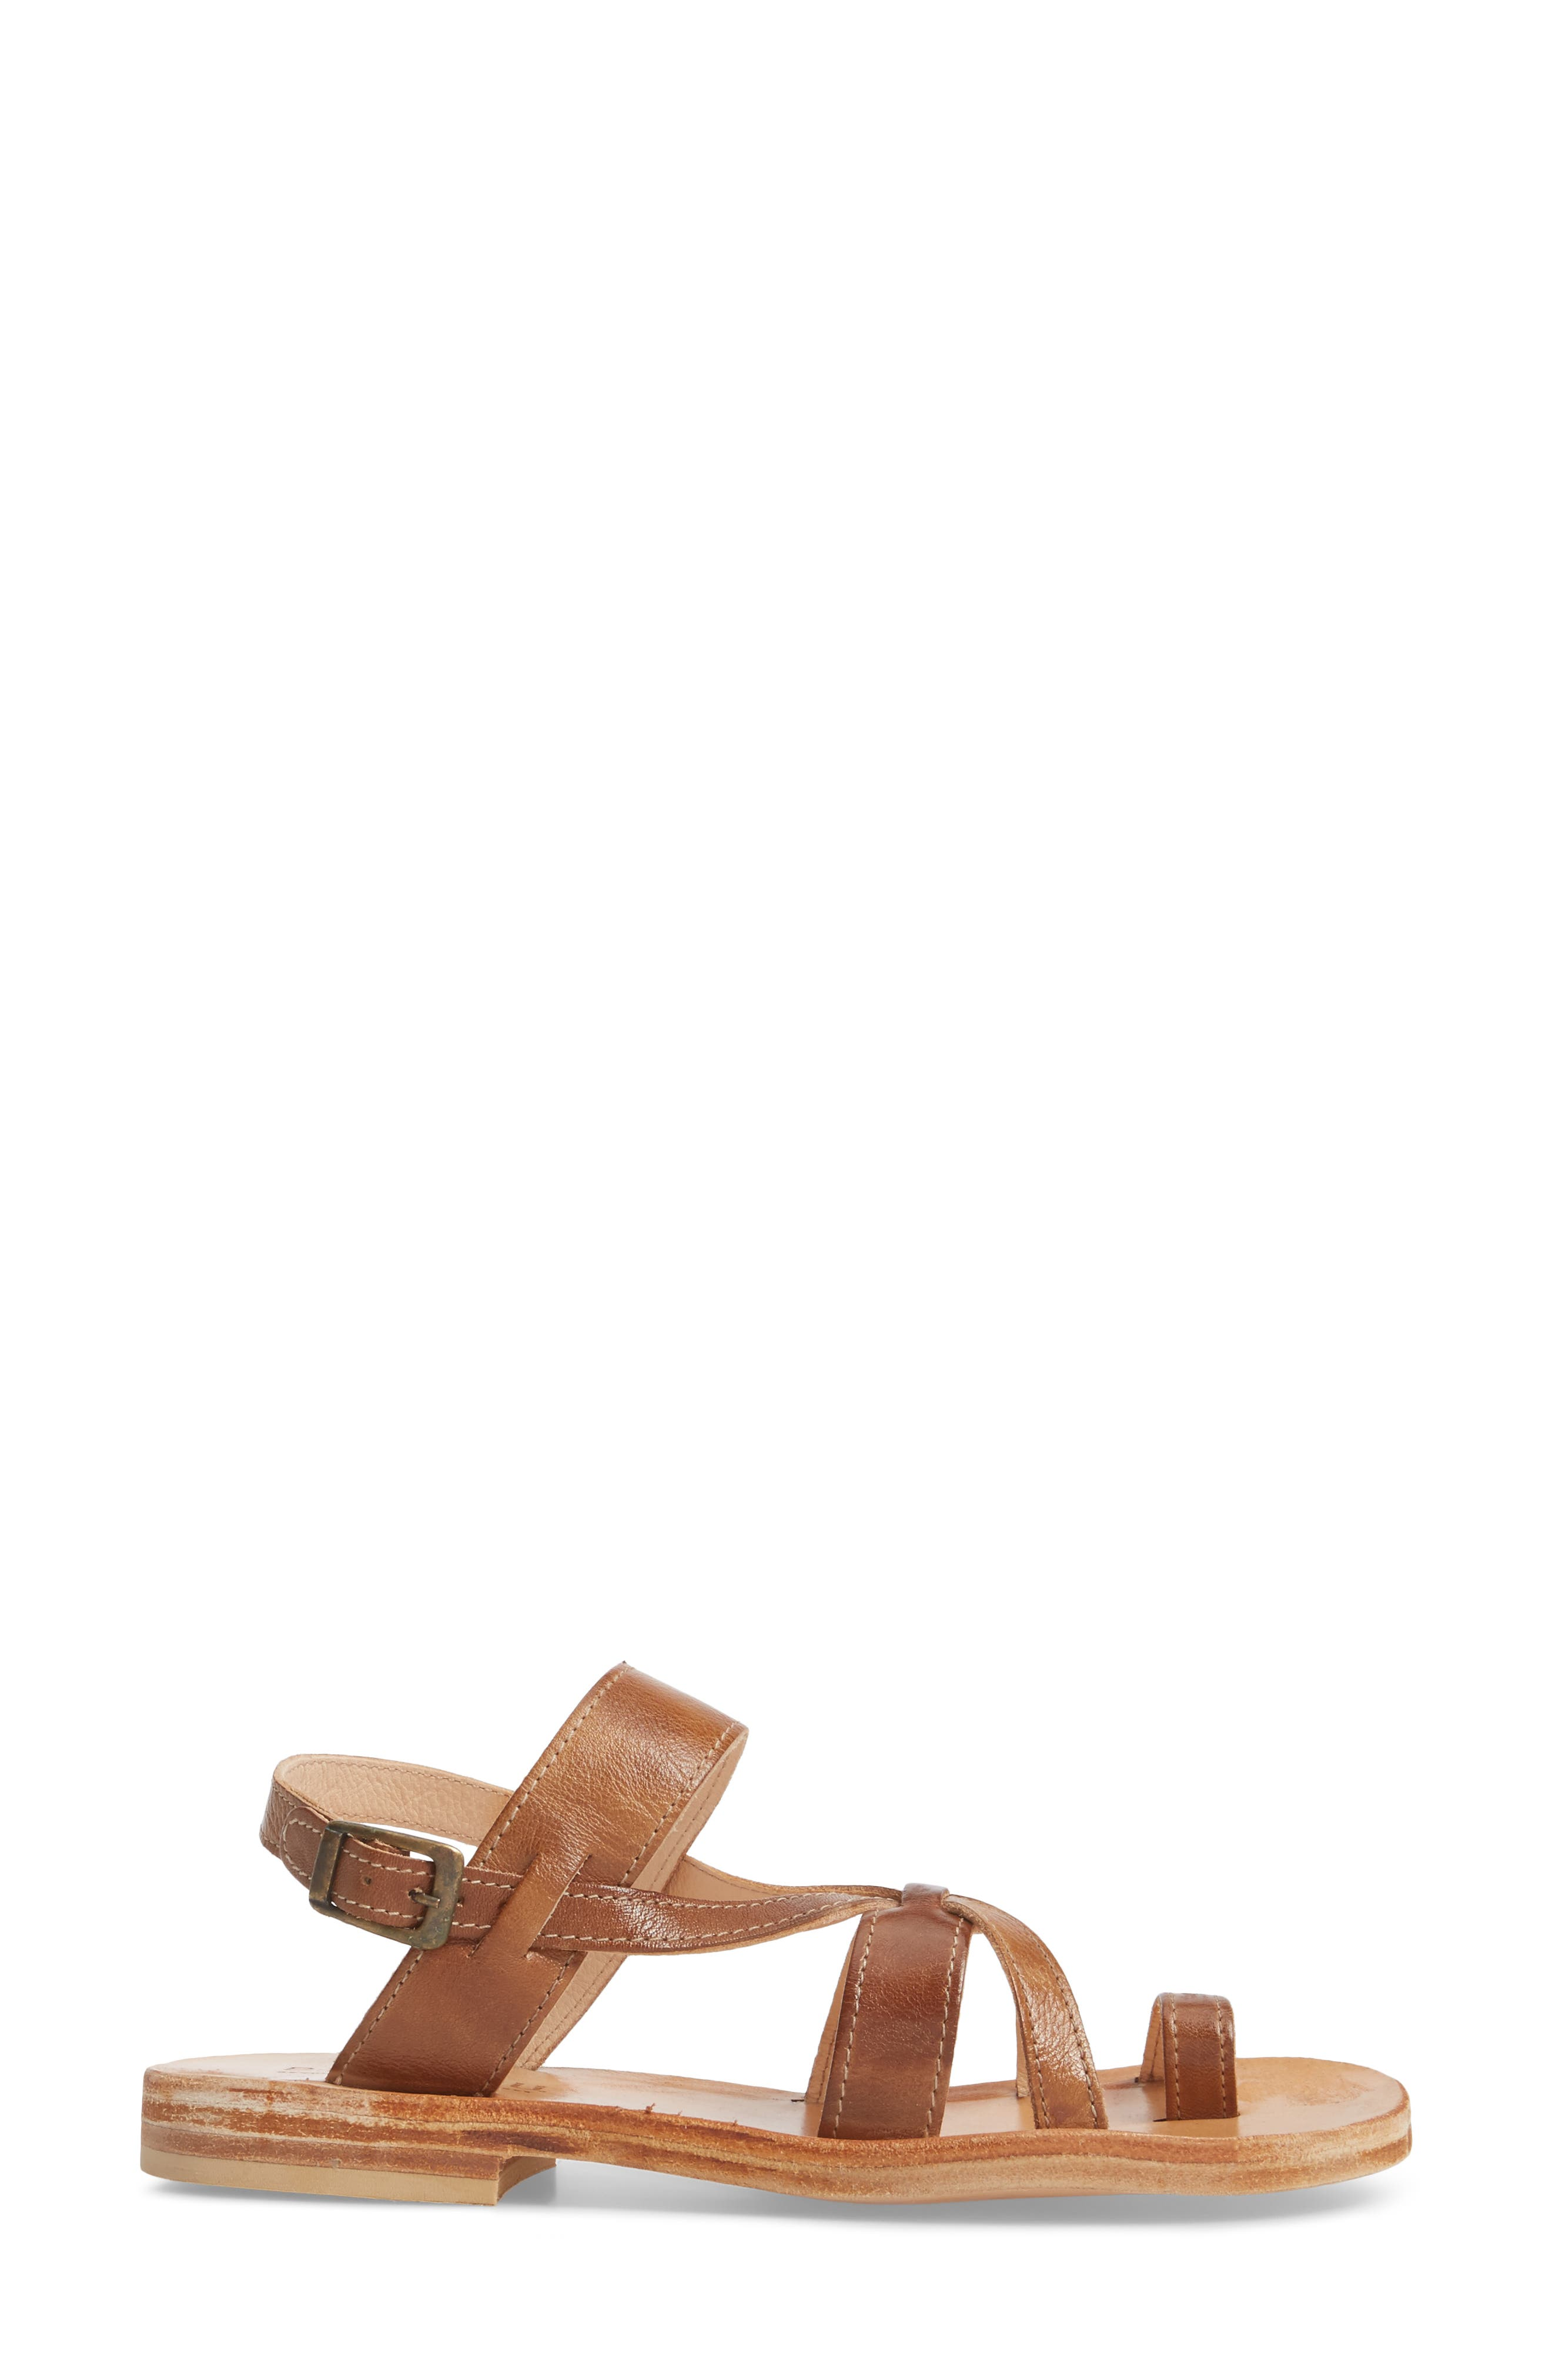 Manati Sandal,                             Alternate thumbnail 3, color,                             230